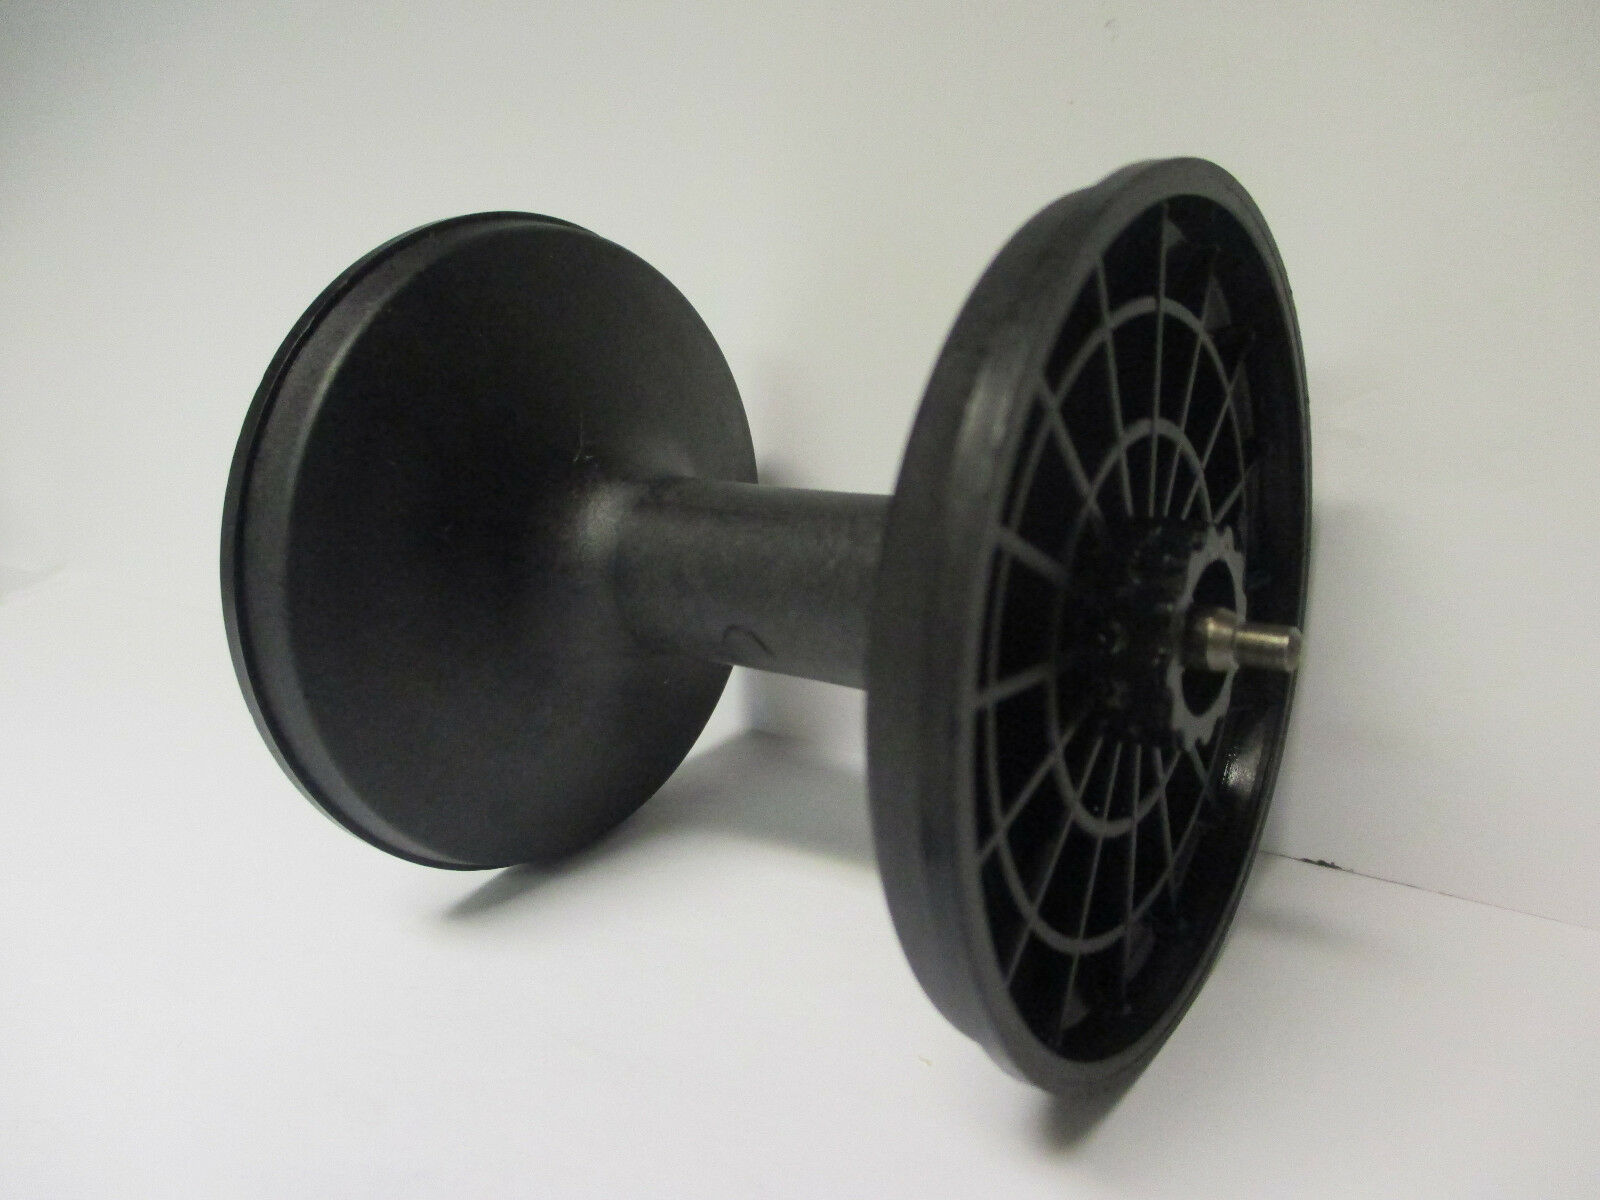 USED  NEWELL BIG GAME REEL PART - C 447 5 - Spool Assembly  D  hot sale online